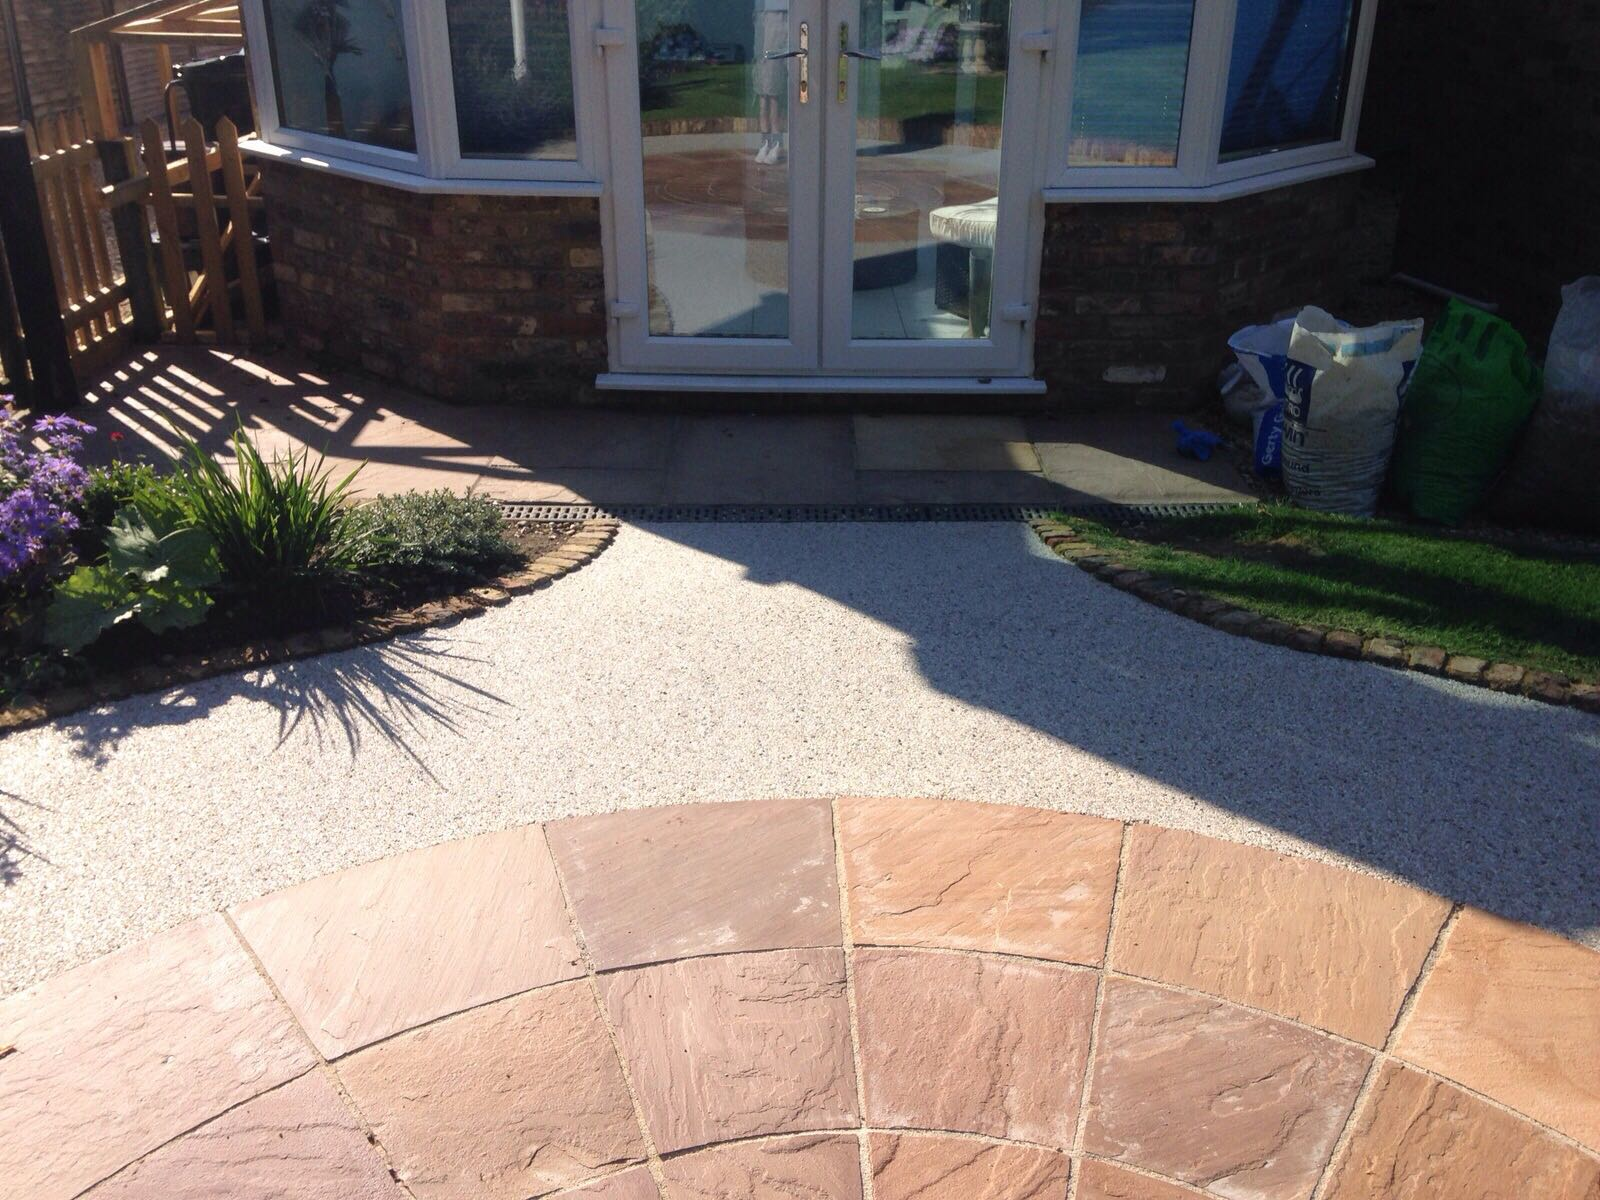 Beau Resin Patio Slabs Hemel Hempstead